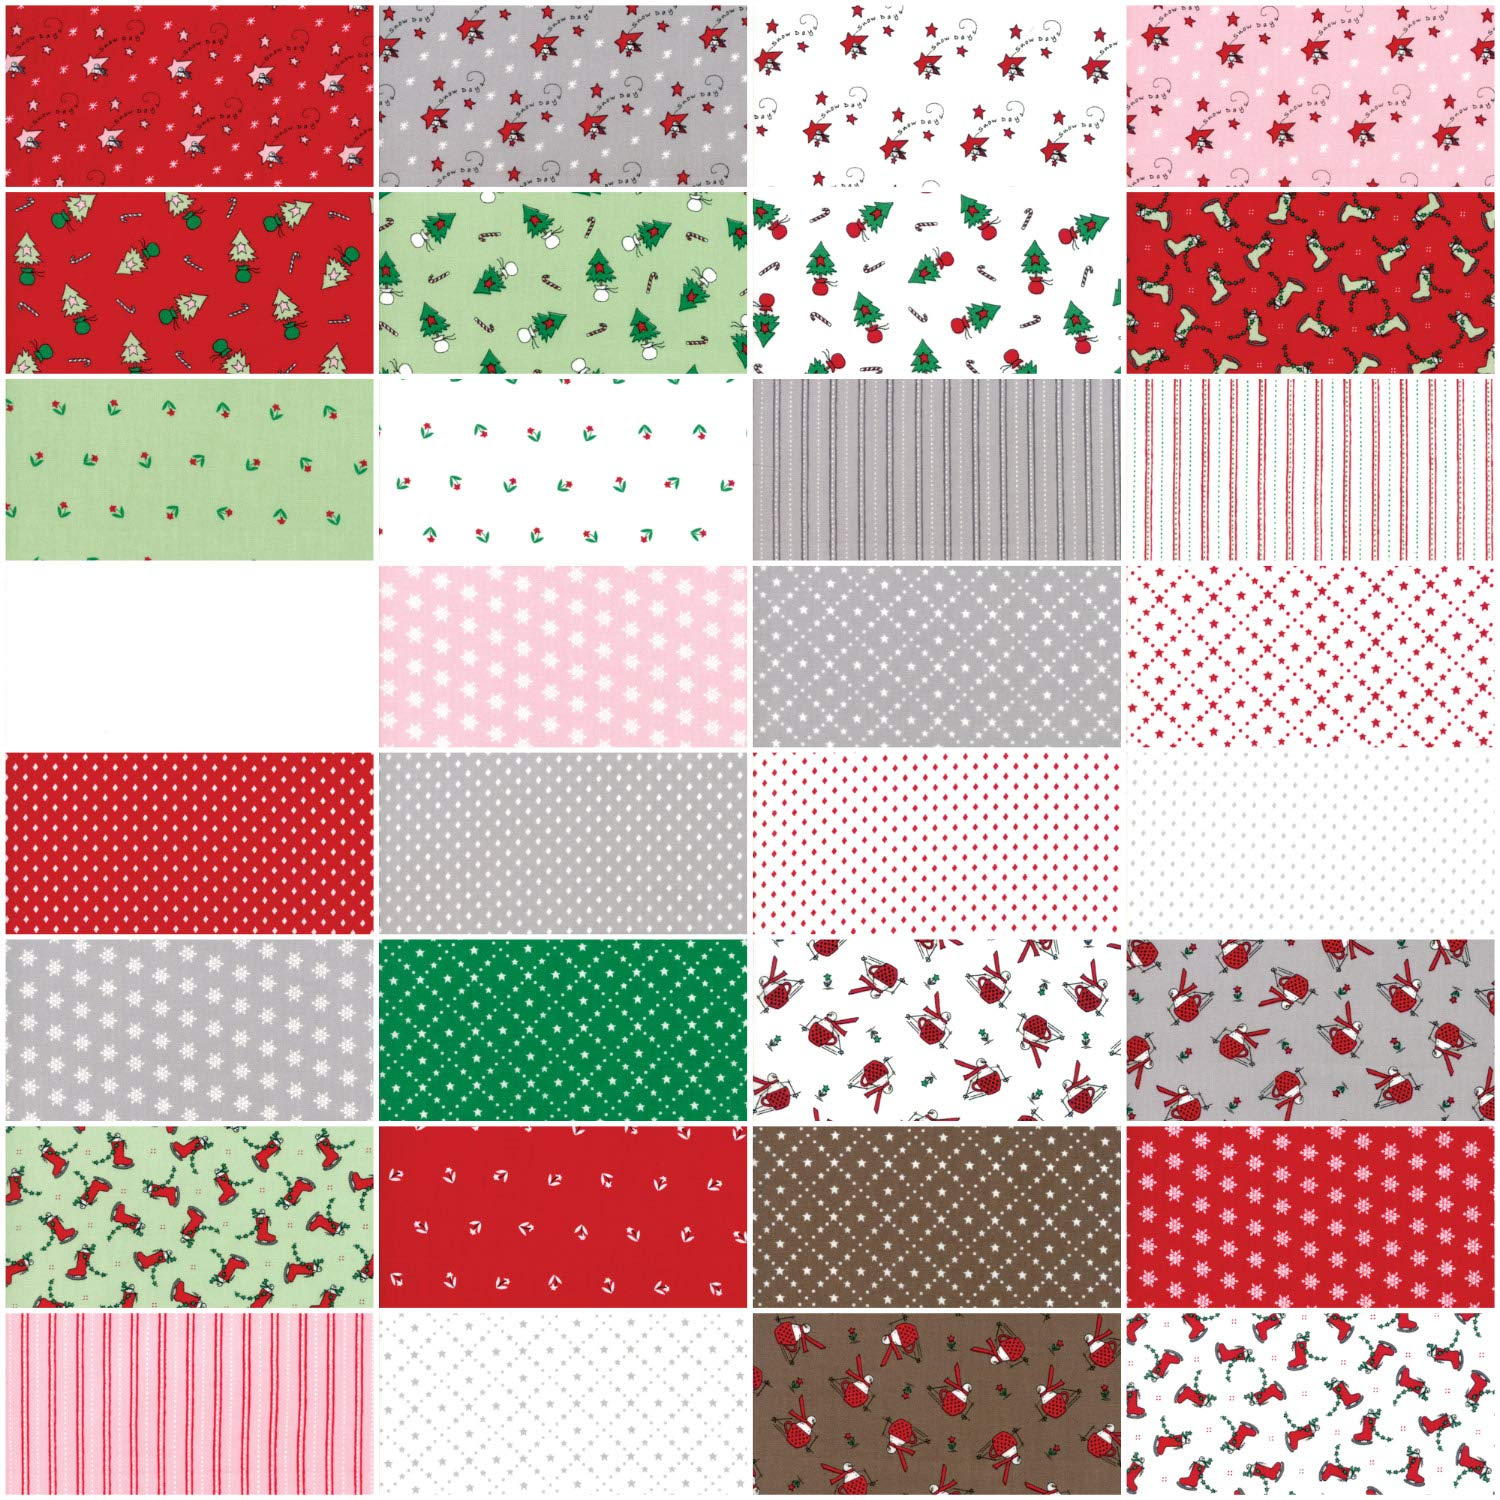 Merry Merry Snow Days Charm Pack by Bunny Hill Designs; 42-5 Inch Precut Fabric Quilt Squares